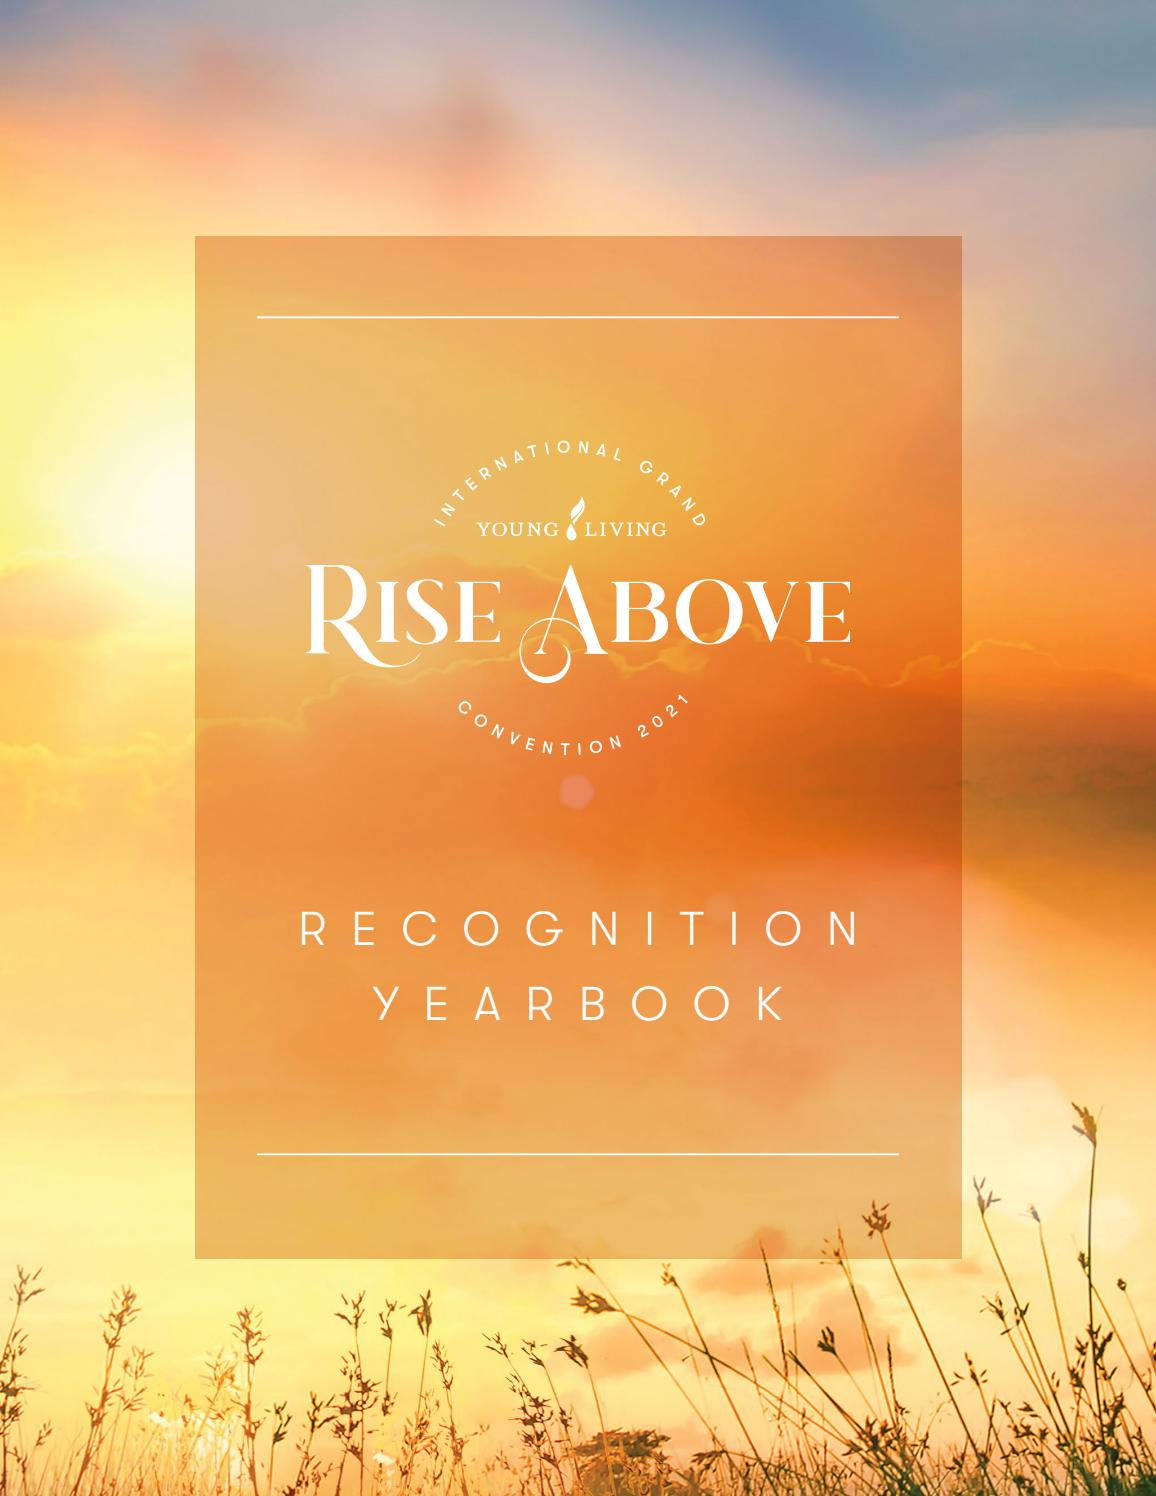 2021 VIGC Recognition Yearbook by Young Living Essential Oils - issuu